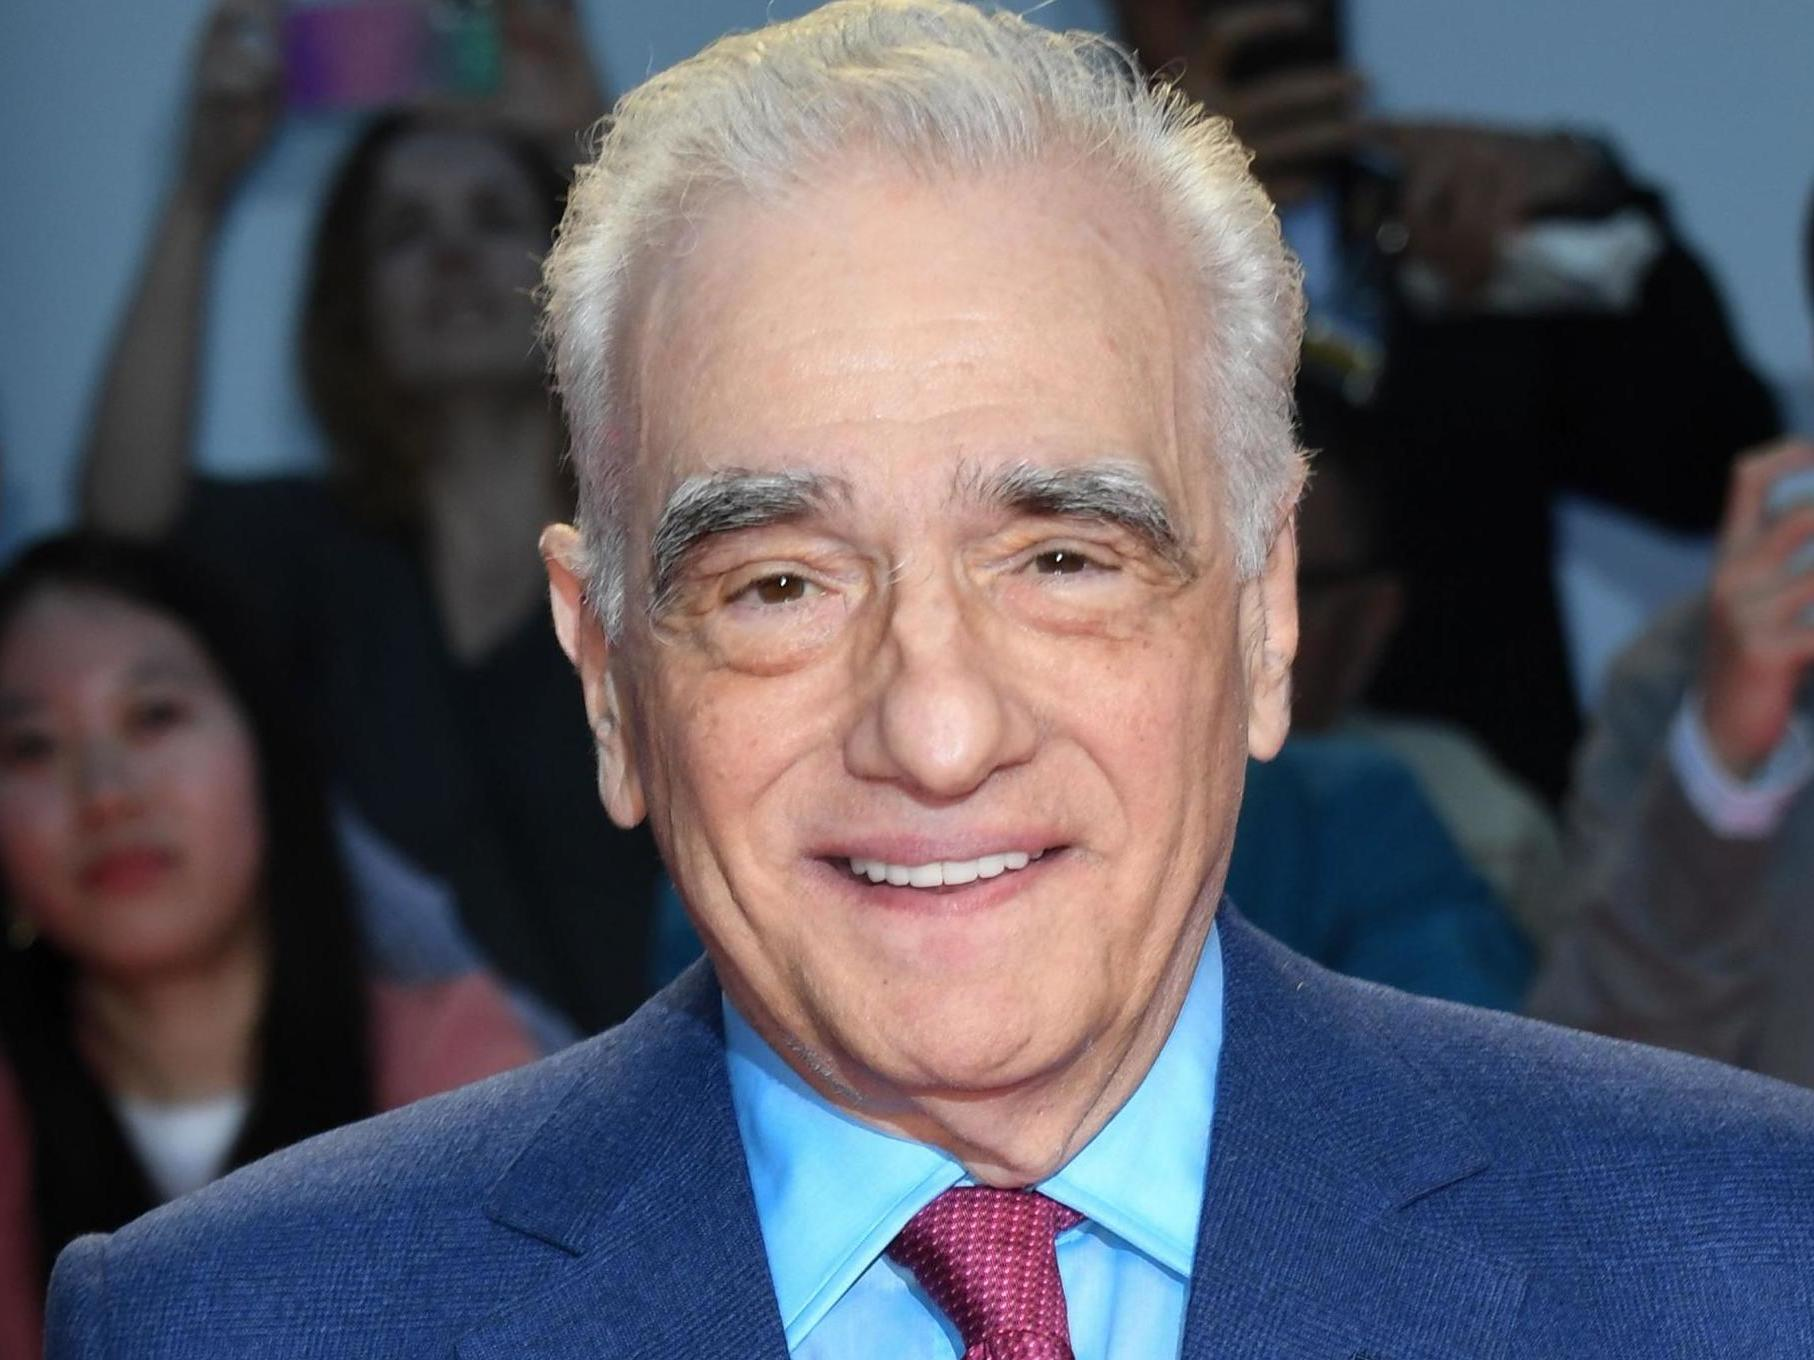 Martin Scorsese says he 'doesn't have time' to write female characters